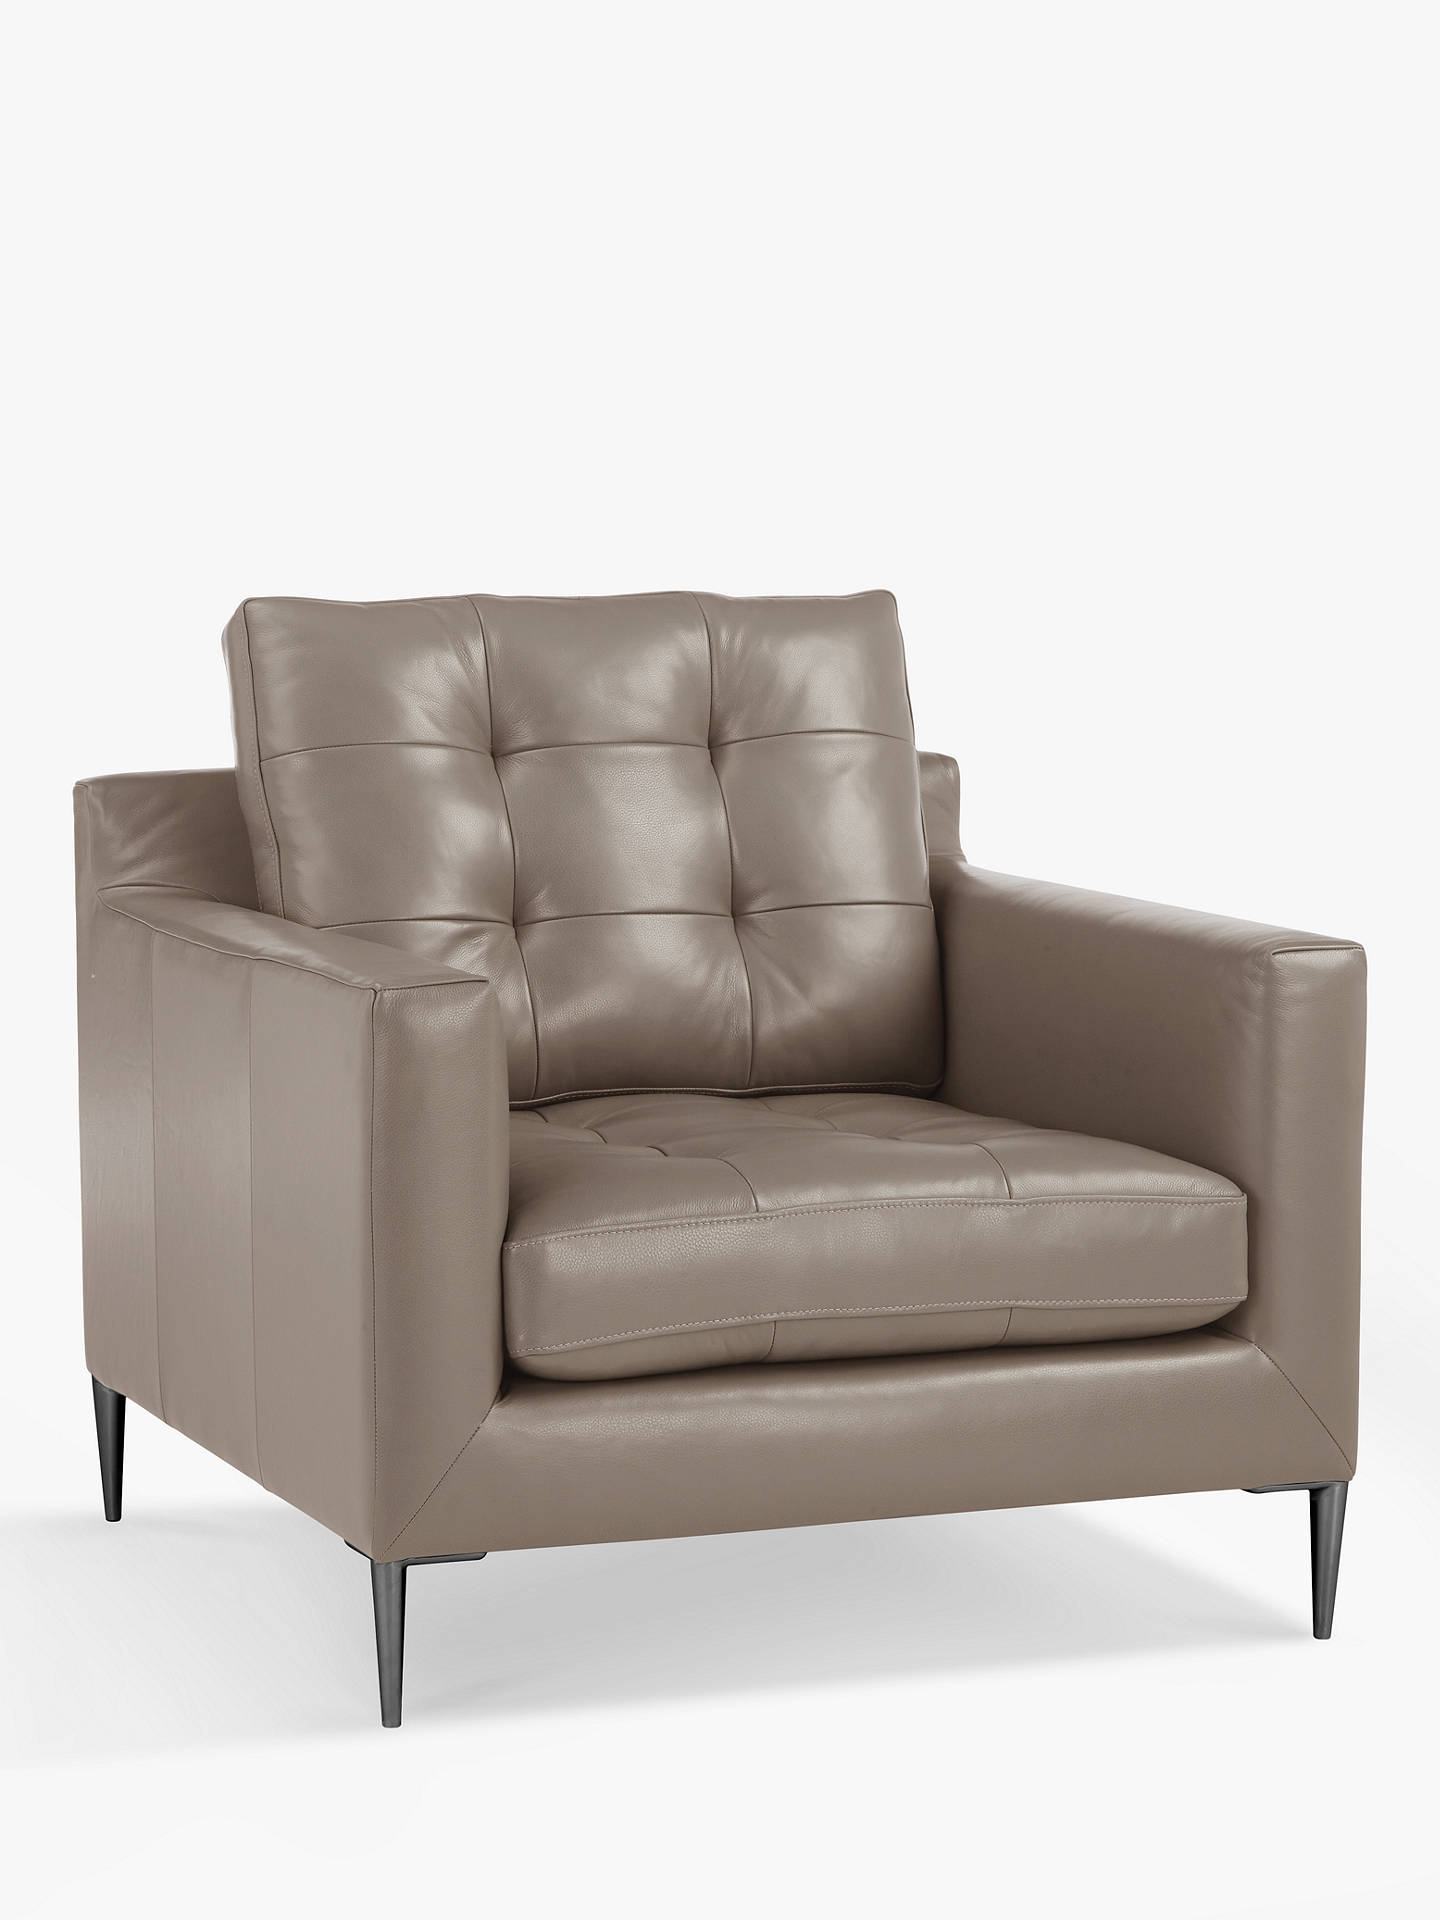 BuyJohn Lewis & Partners Draper Leather Armchair, Metal Leg, Nature Putty Online at johnlewis.com